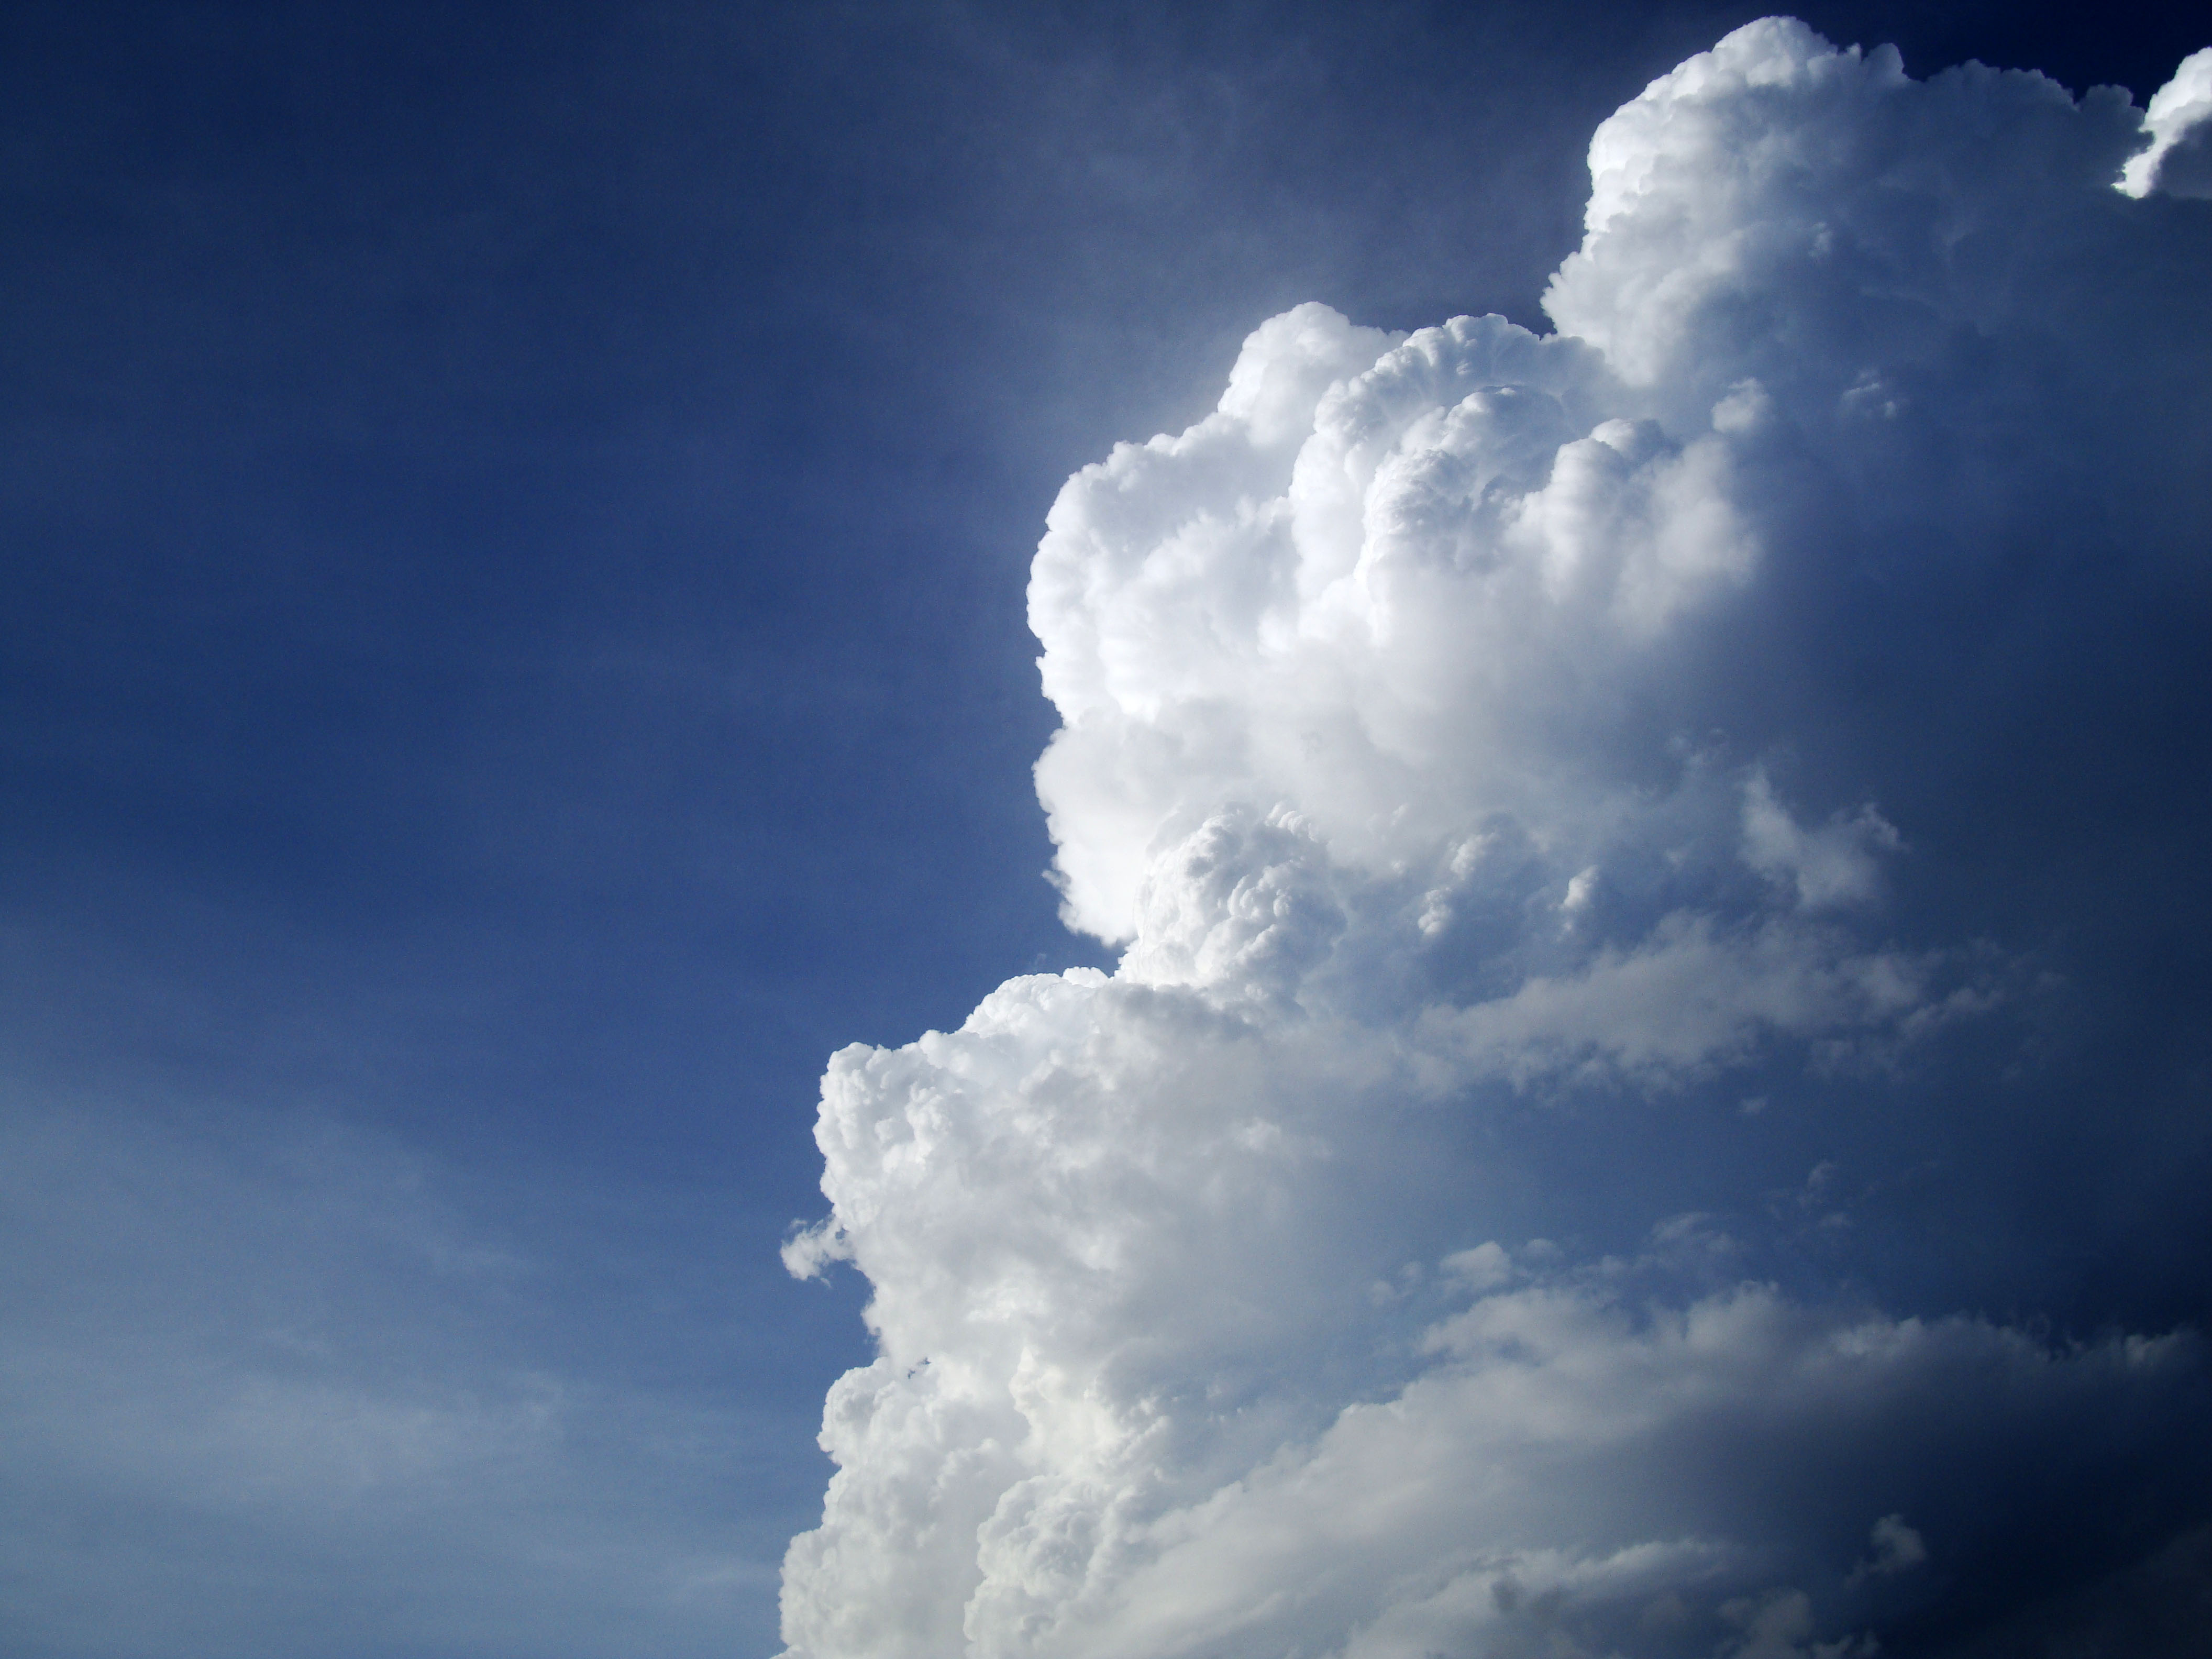 Cumulonimbus Clouds Formations Sky Storms Weather Phenomena 05